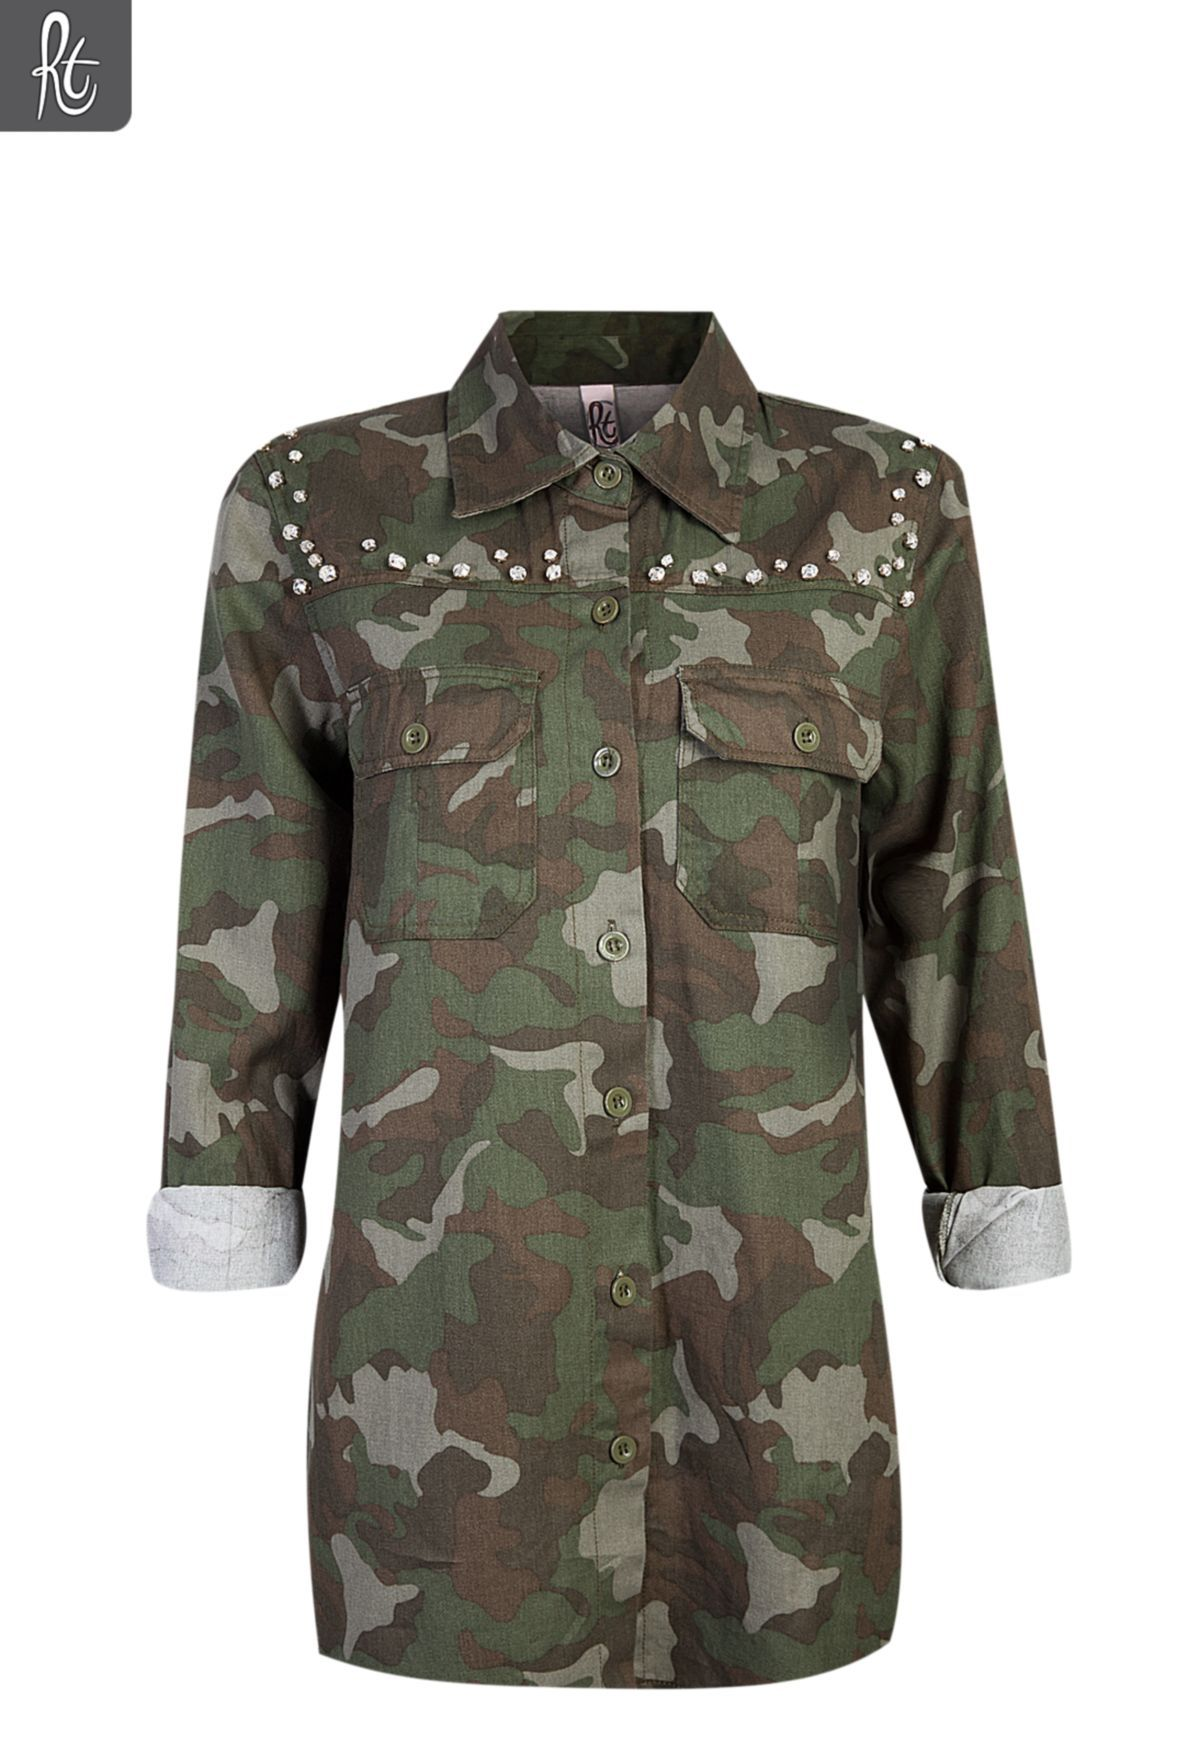 Ladies Embellished Camo Shirt from Mr Price. This would be